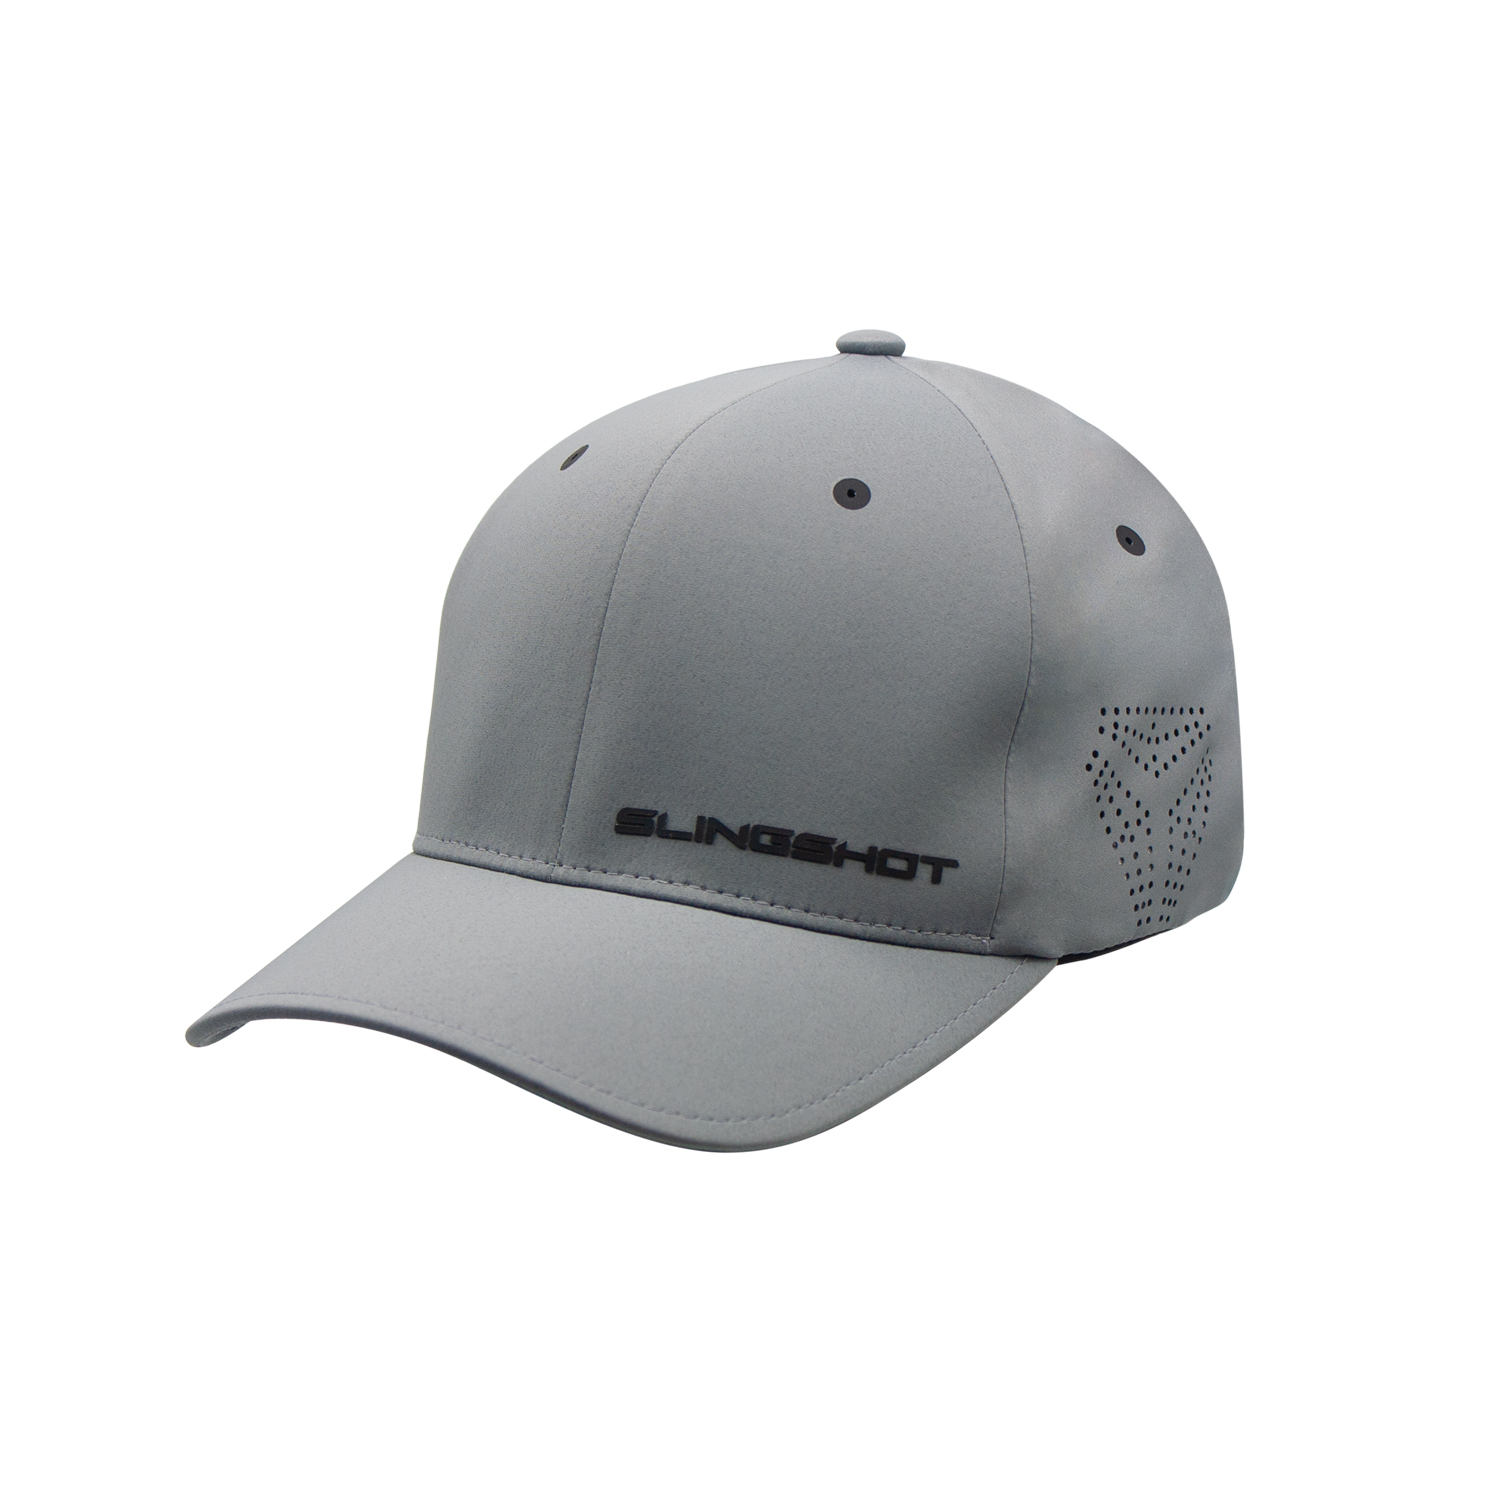 Men's Premium Hat with Slingshot Logo, Gray